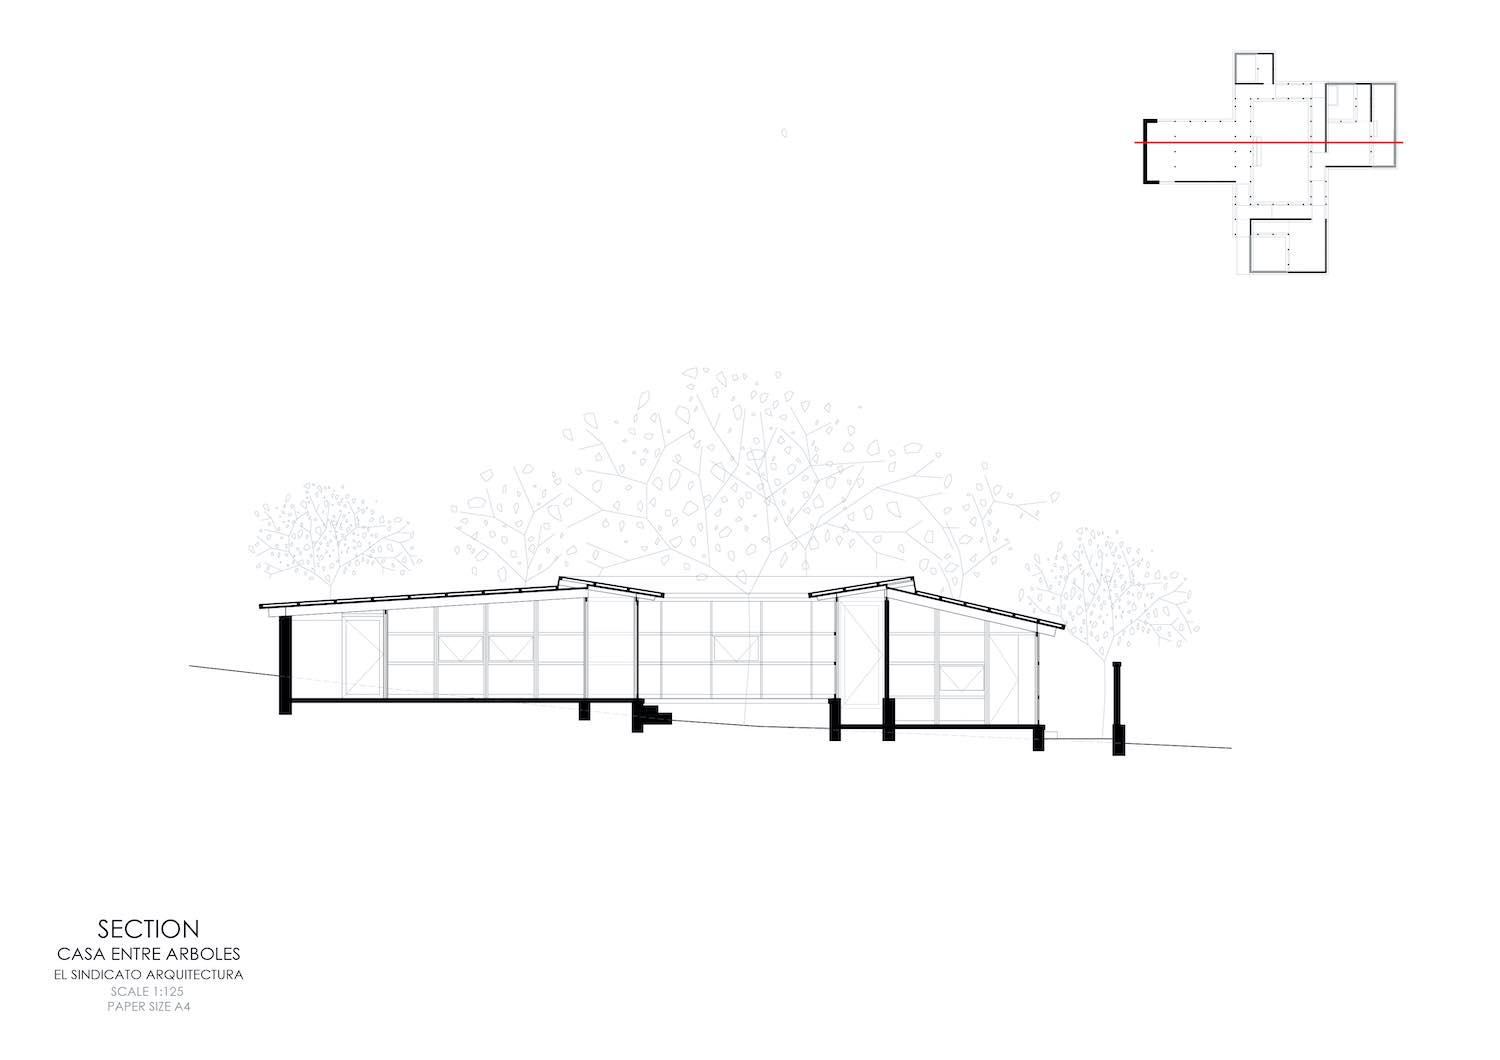 architectural drawing for section